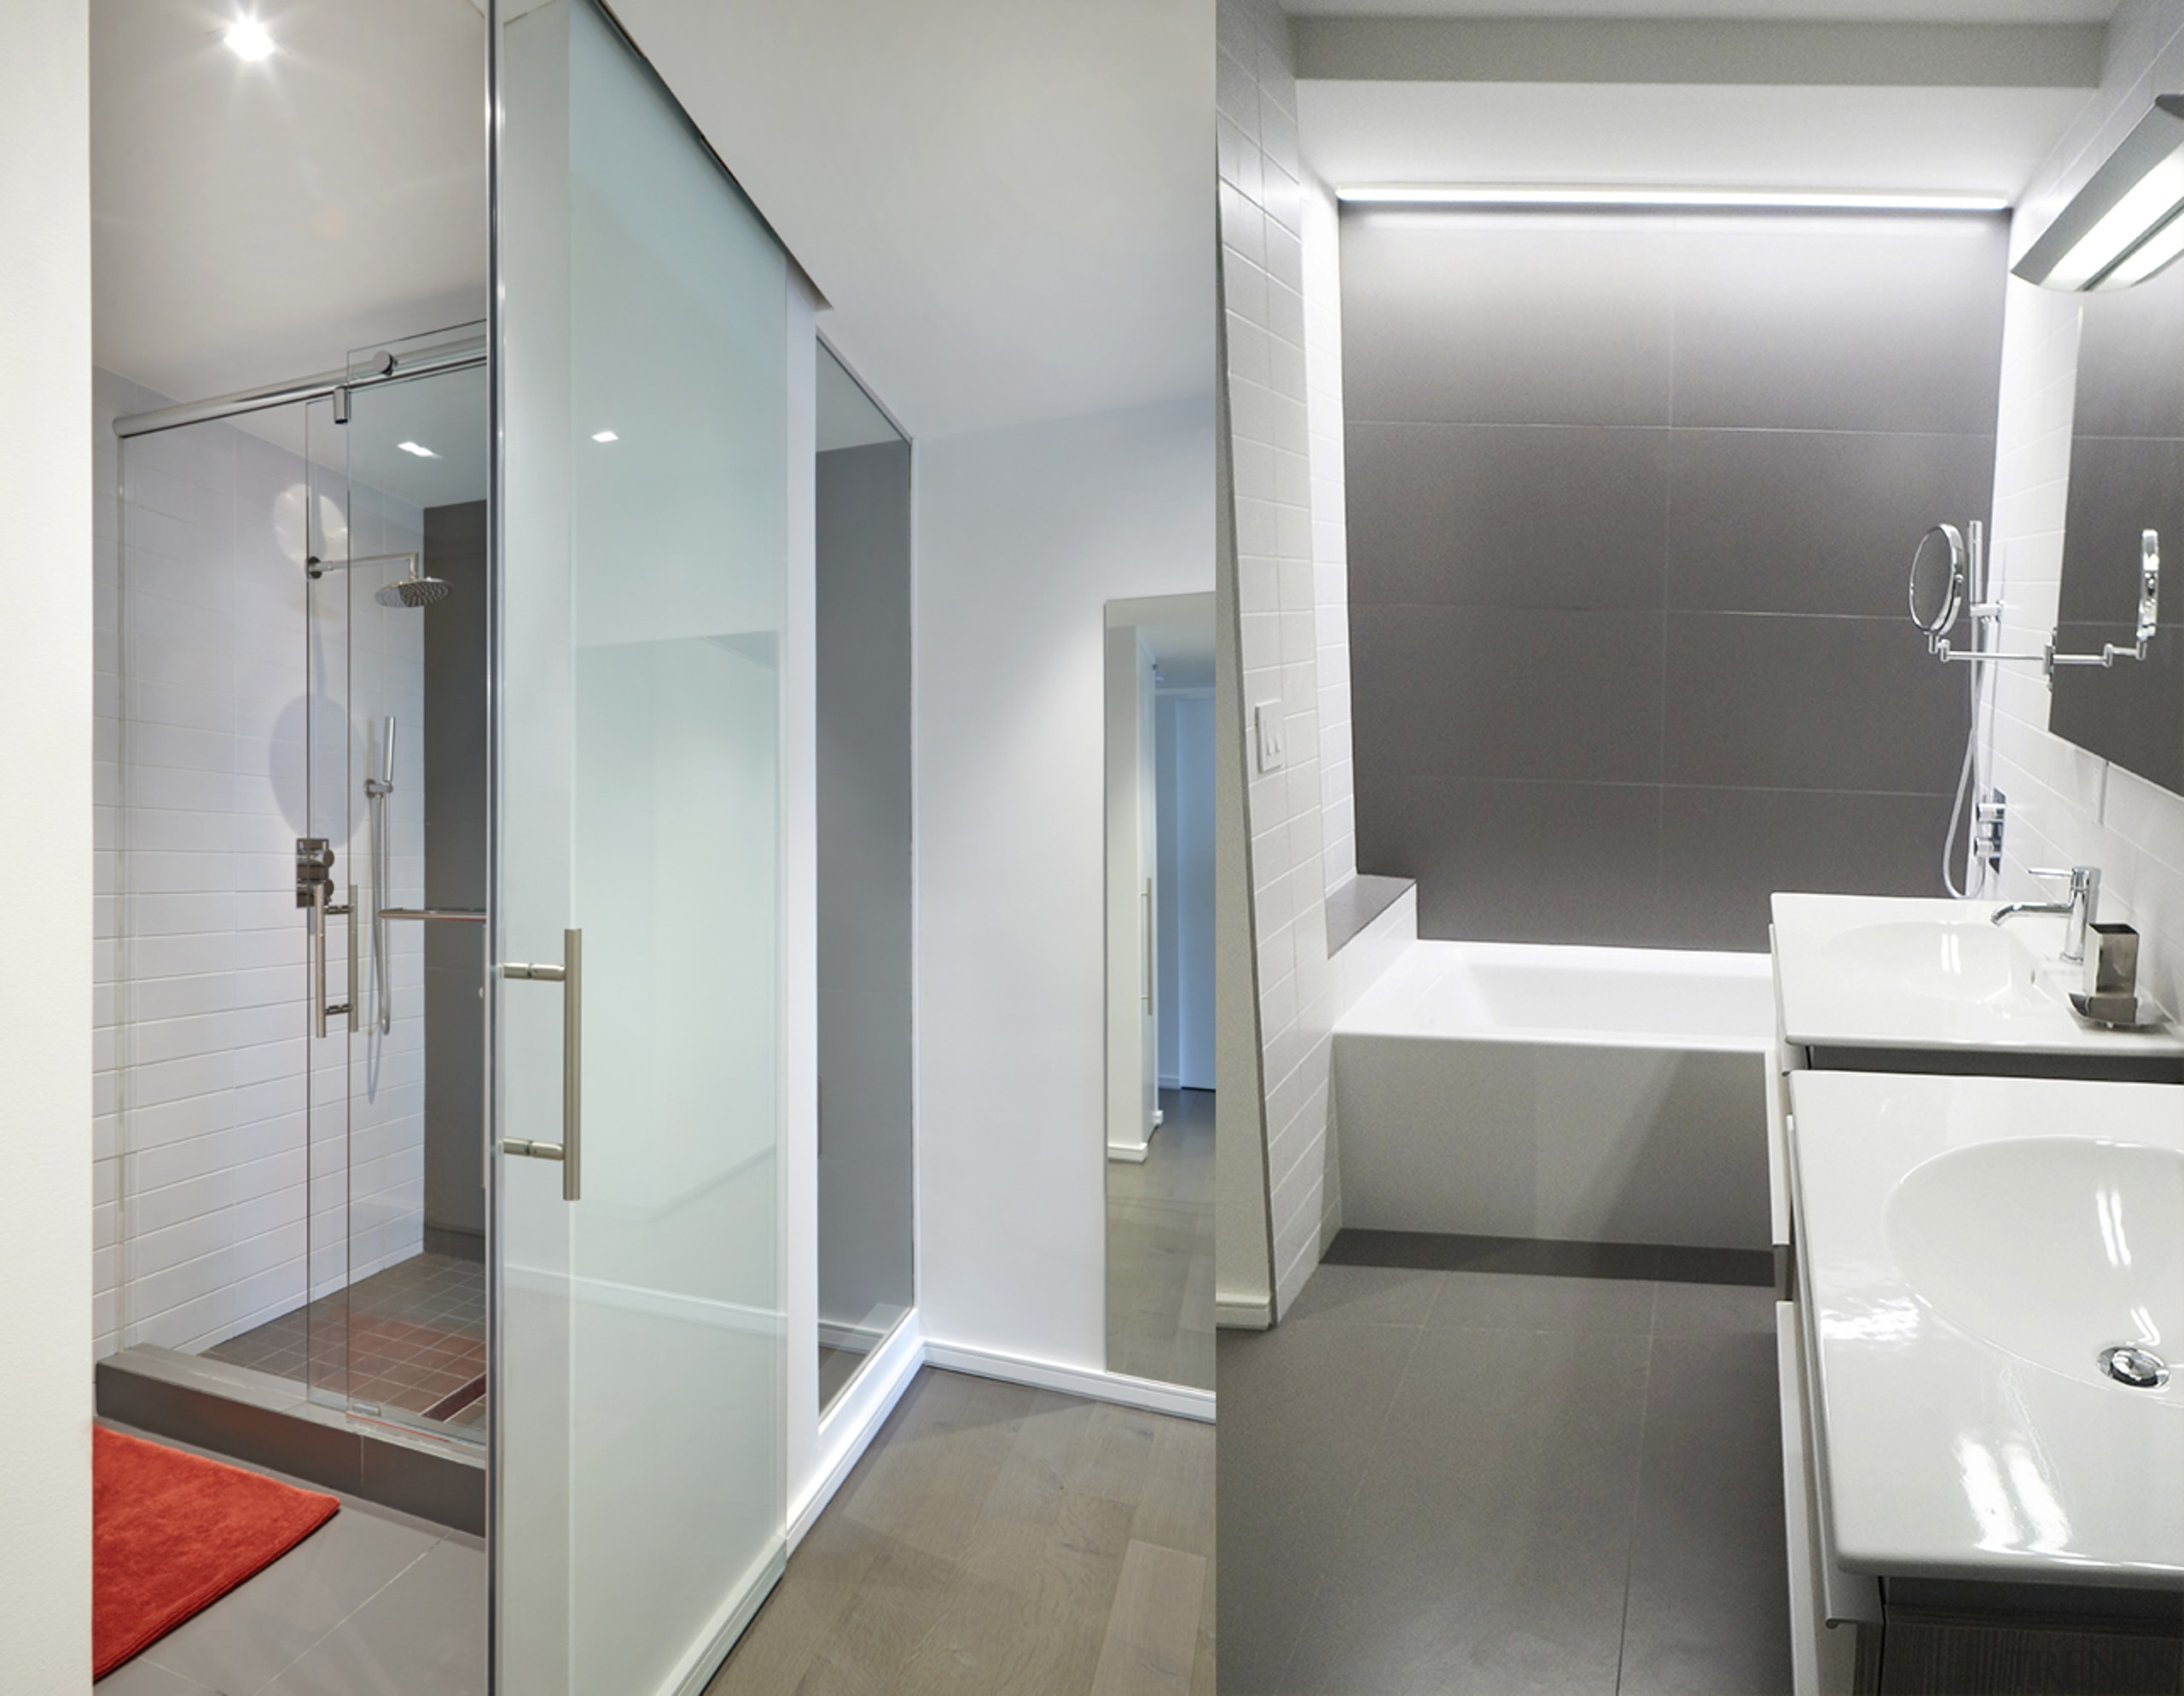 After: Paring back the design helps the smaller aluminium, architecture, bathroom, building, ceiling, door, floor, flooring, glass, house, interior design, loft, material property, plumbing fixture, property, real estate, room, tile, toilet, wall, gray, white